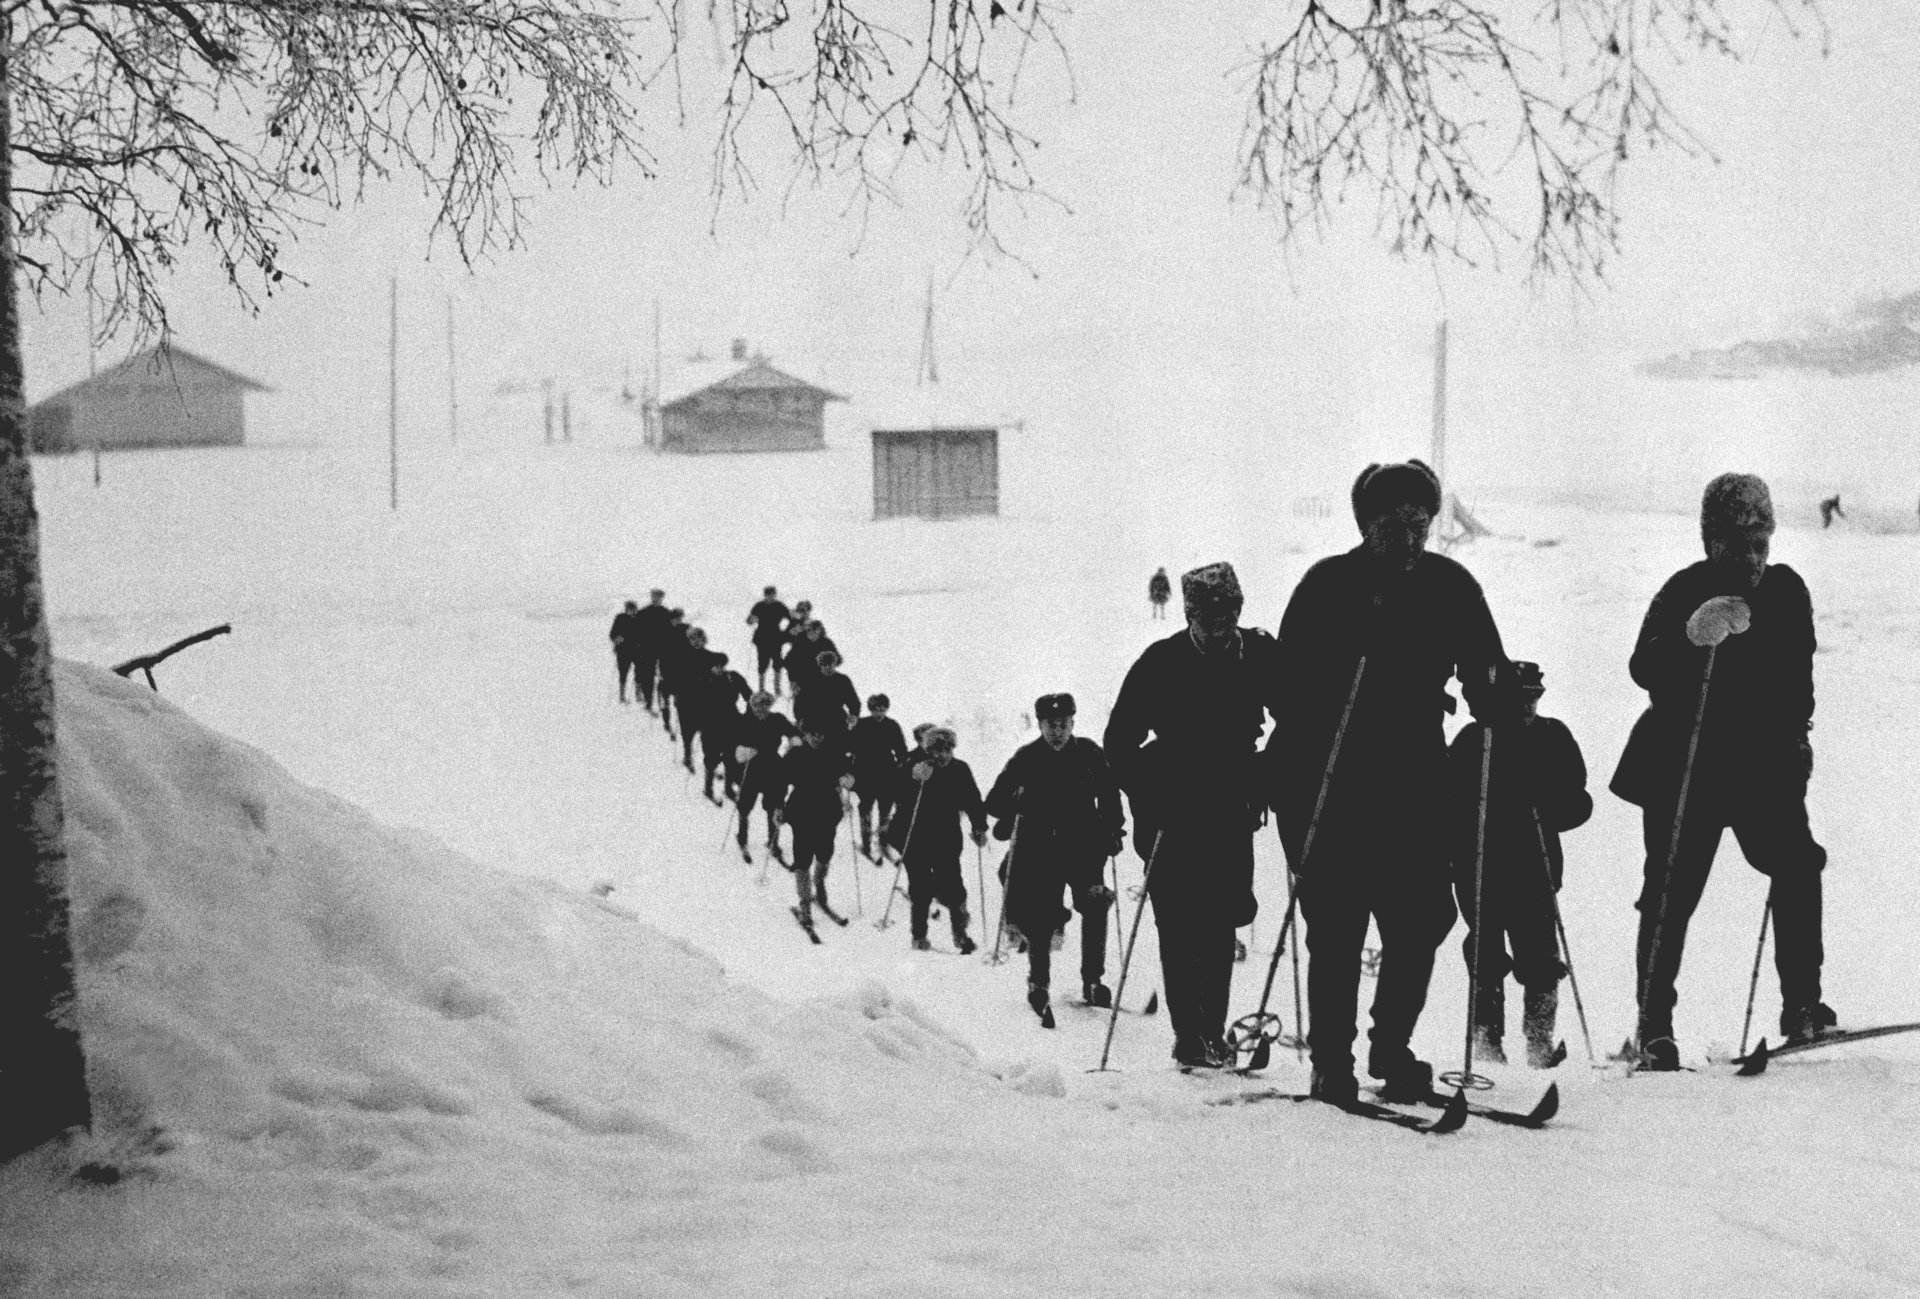 FInns on skis fighting russians dads blog